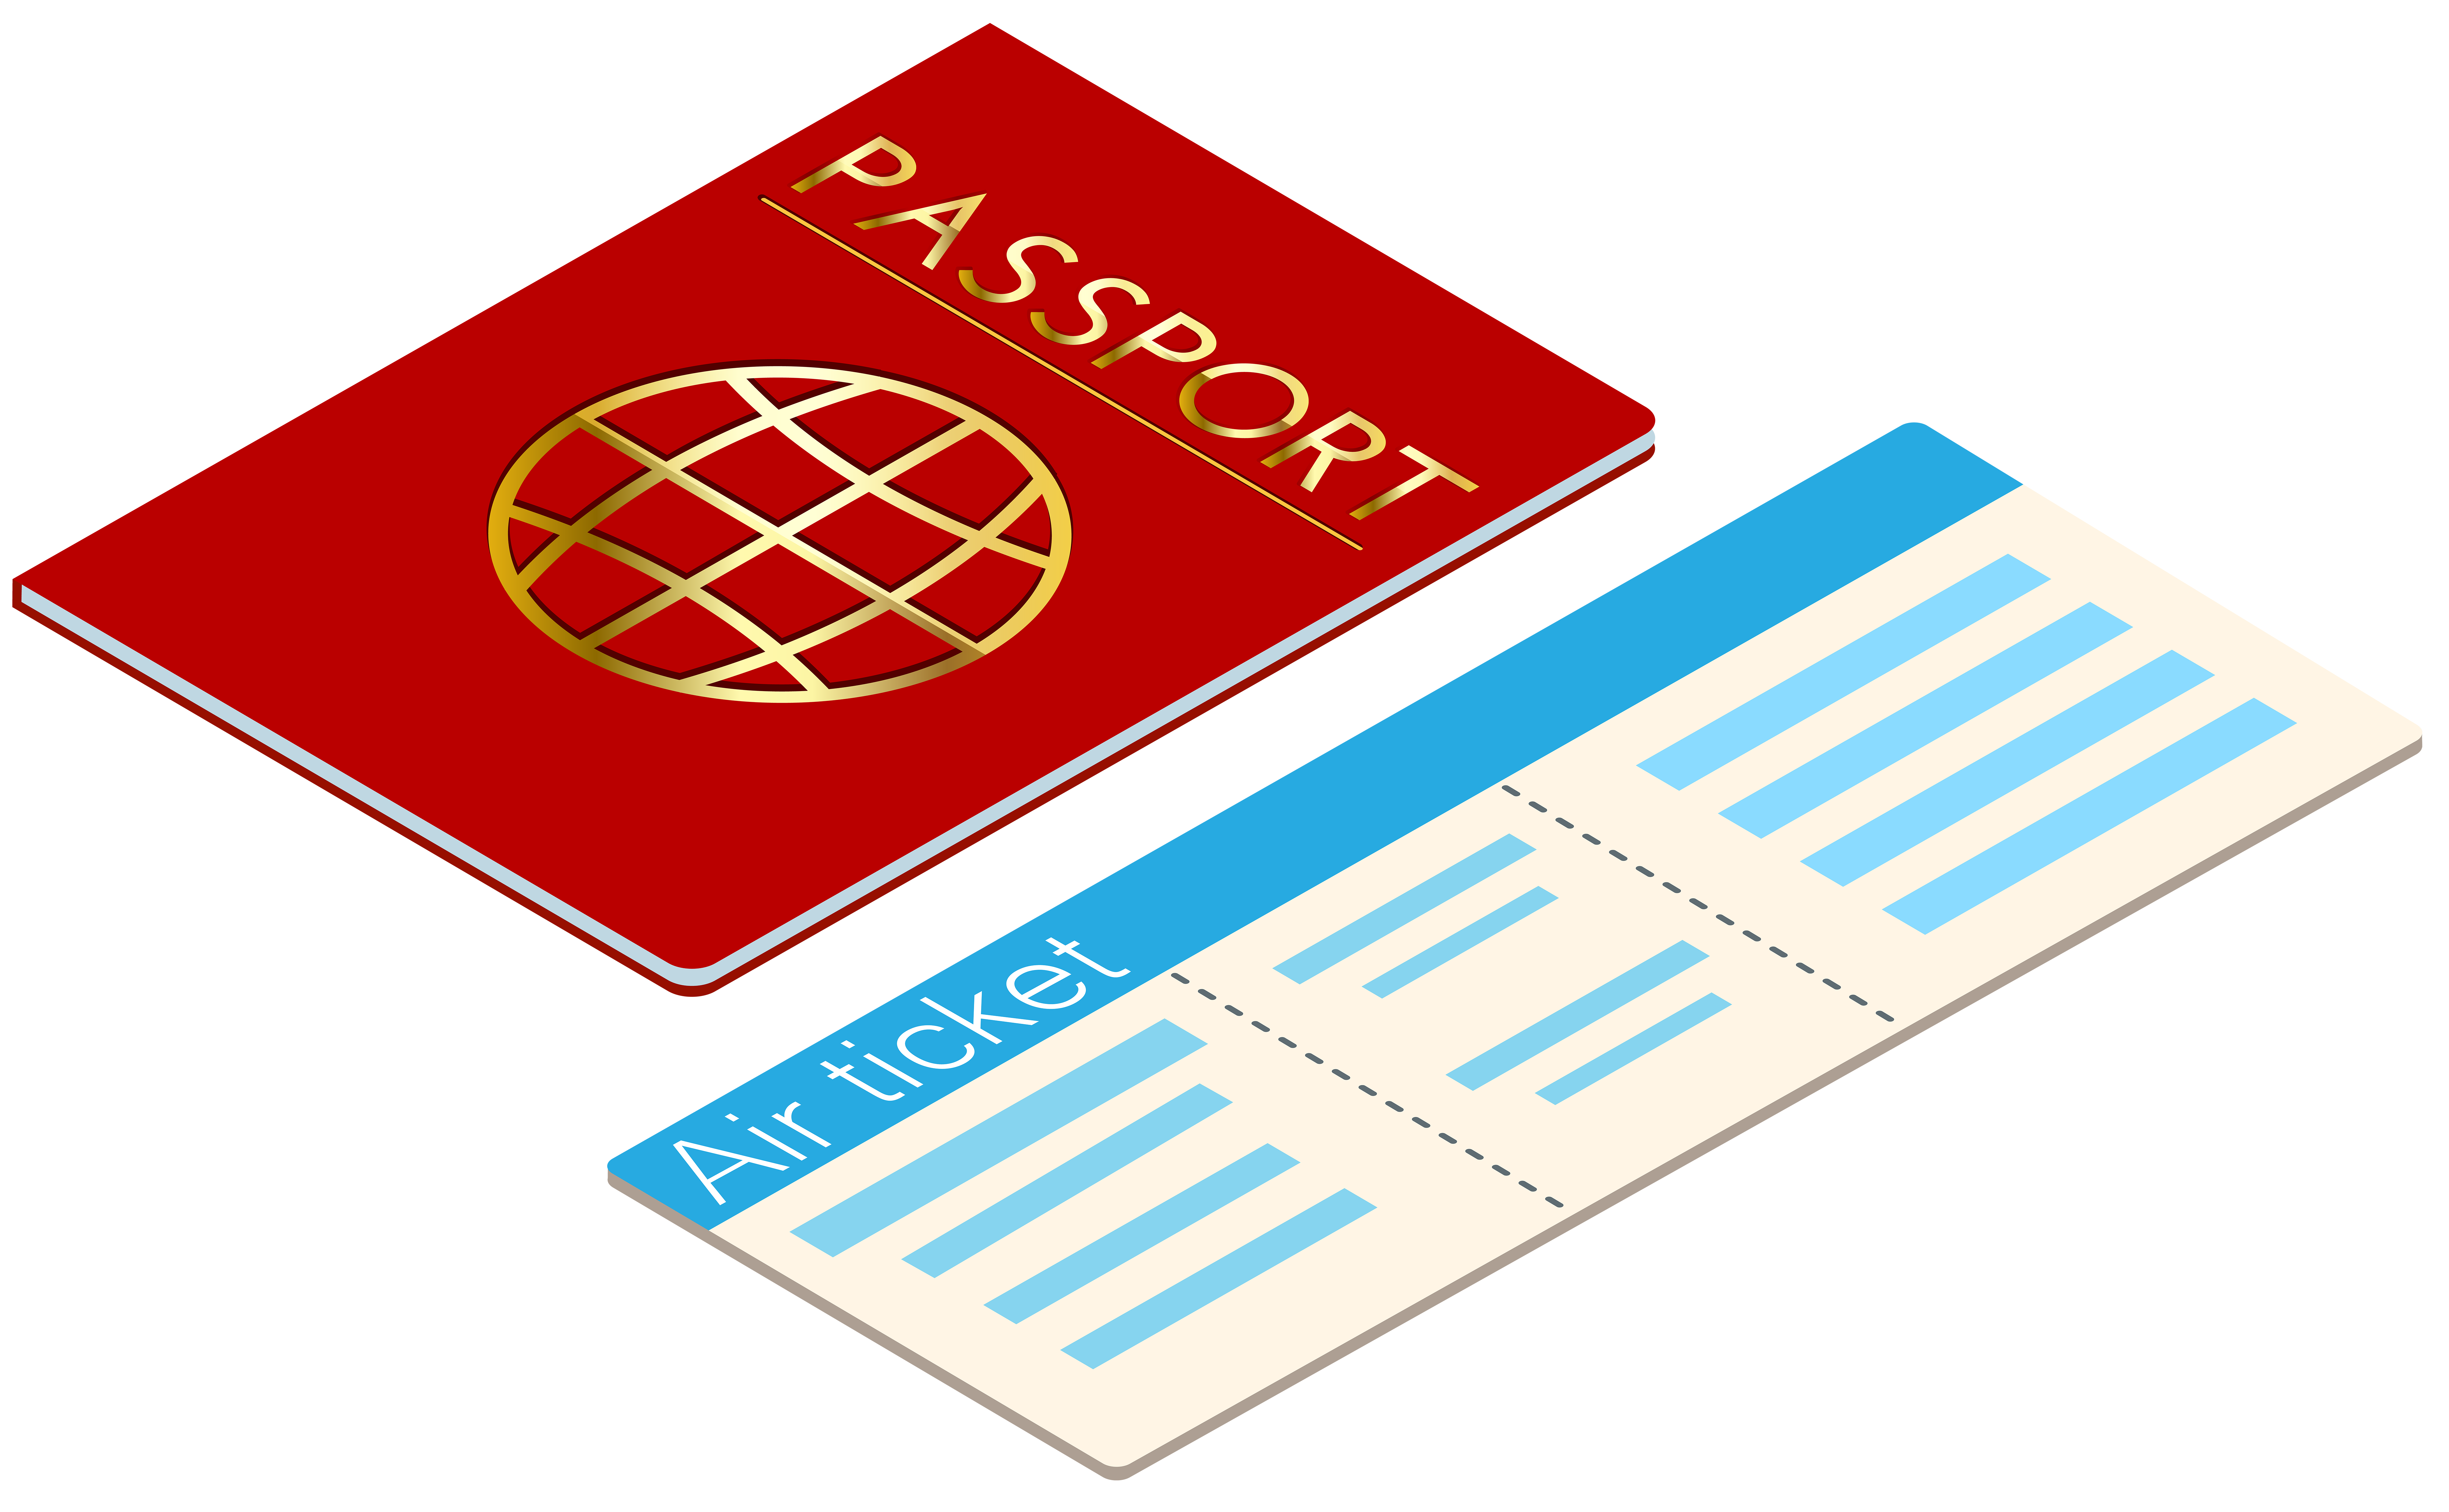 Passport clipart images clipart images gallery for free.